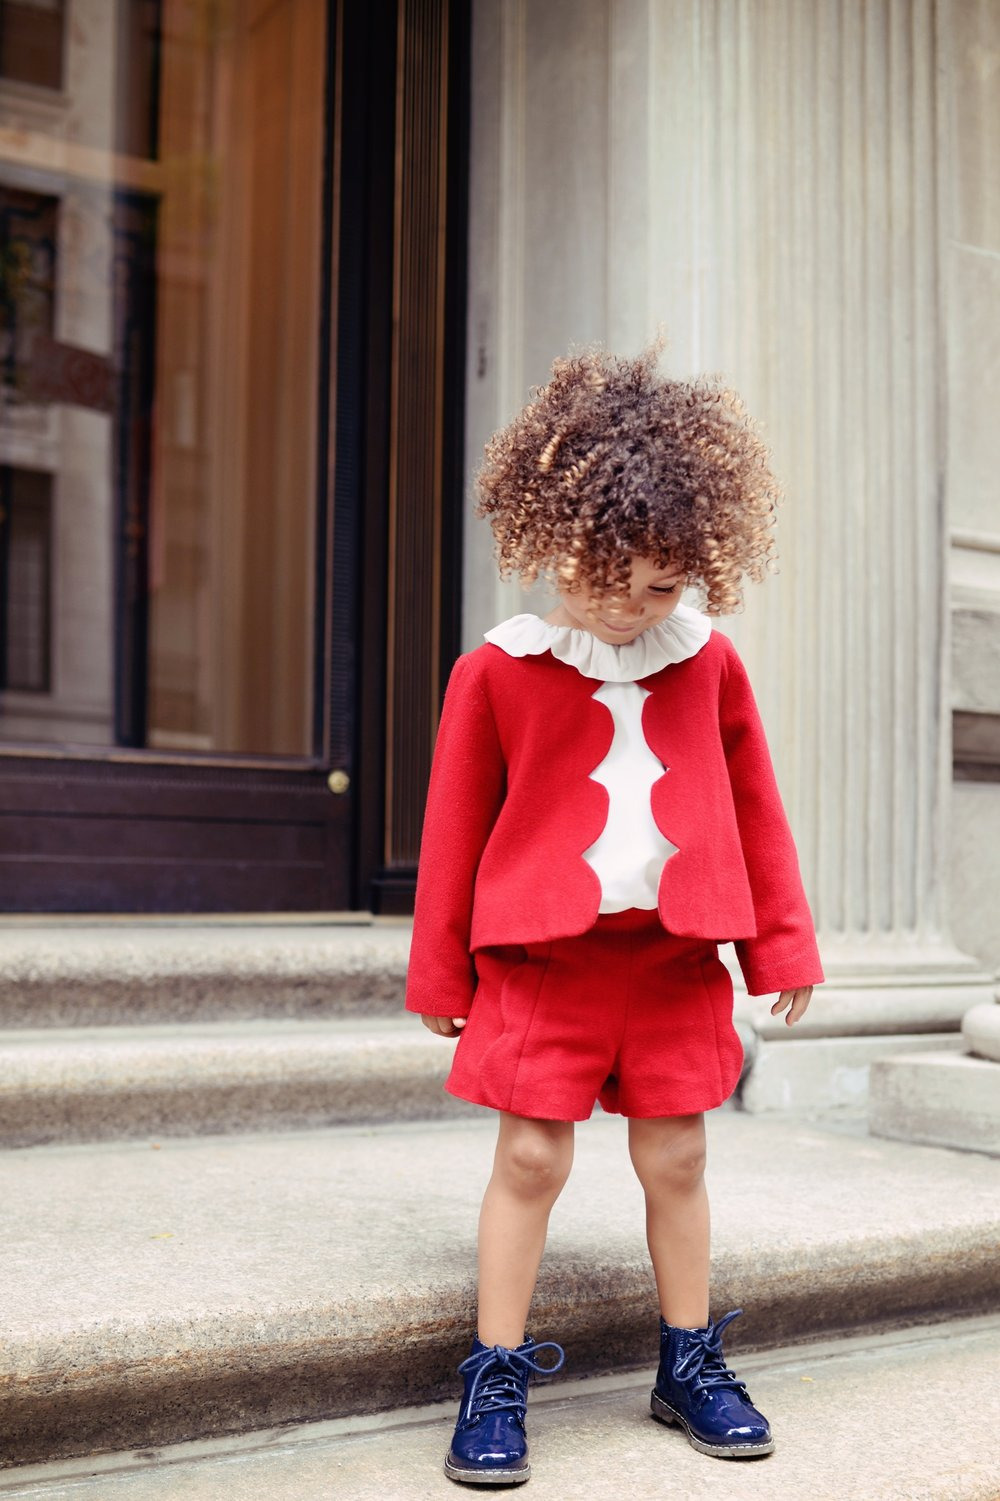 Enfant+Street+Style+by+Gina+Kim+Photography-49.jpeg